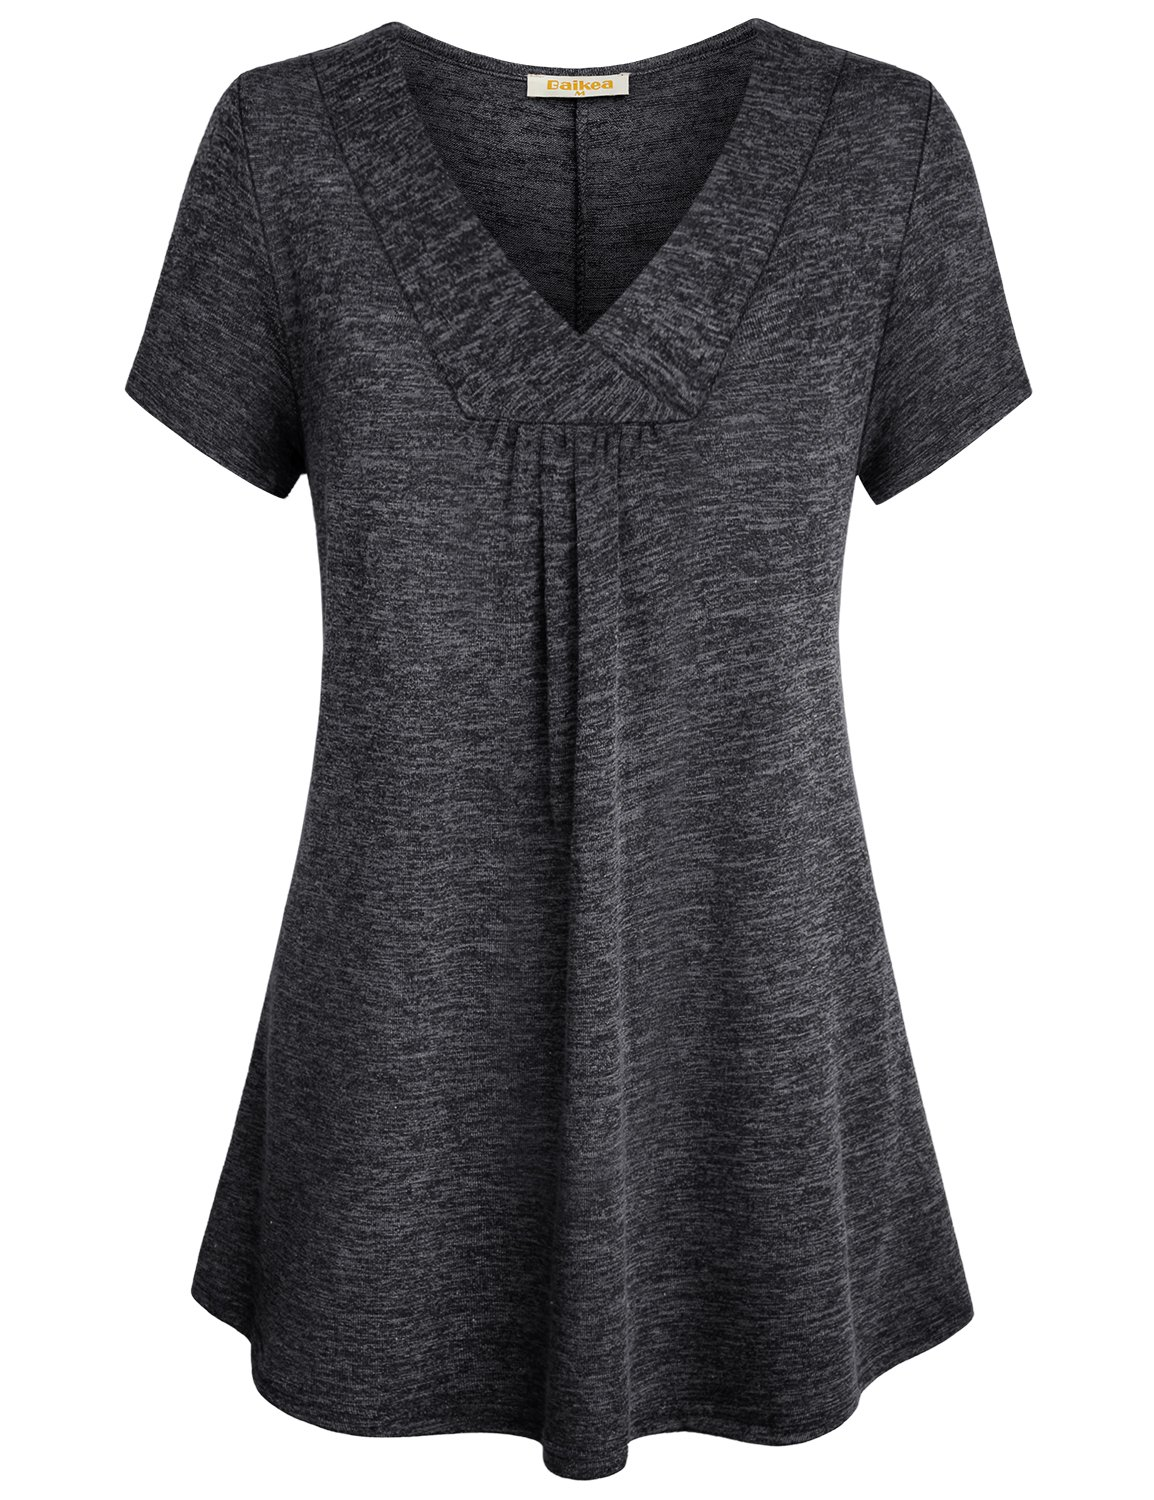 Baikea Dressy Tunic, Ladies Spring V Neck Short Sleeve Work Shirts for Women Office Tops Business Casual Blouse Drape Solid Color Fit Flare Grey Loose Tunic Shirt,  X-Large (US 14)